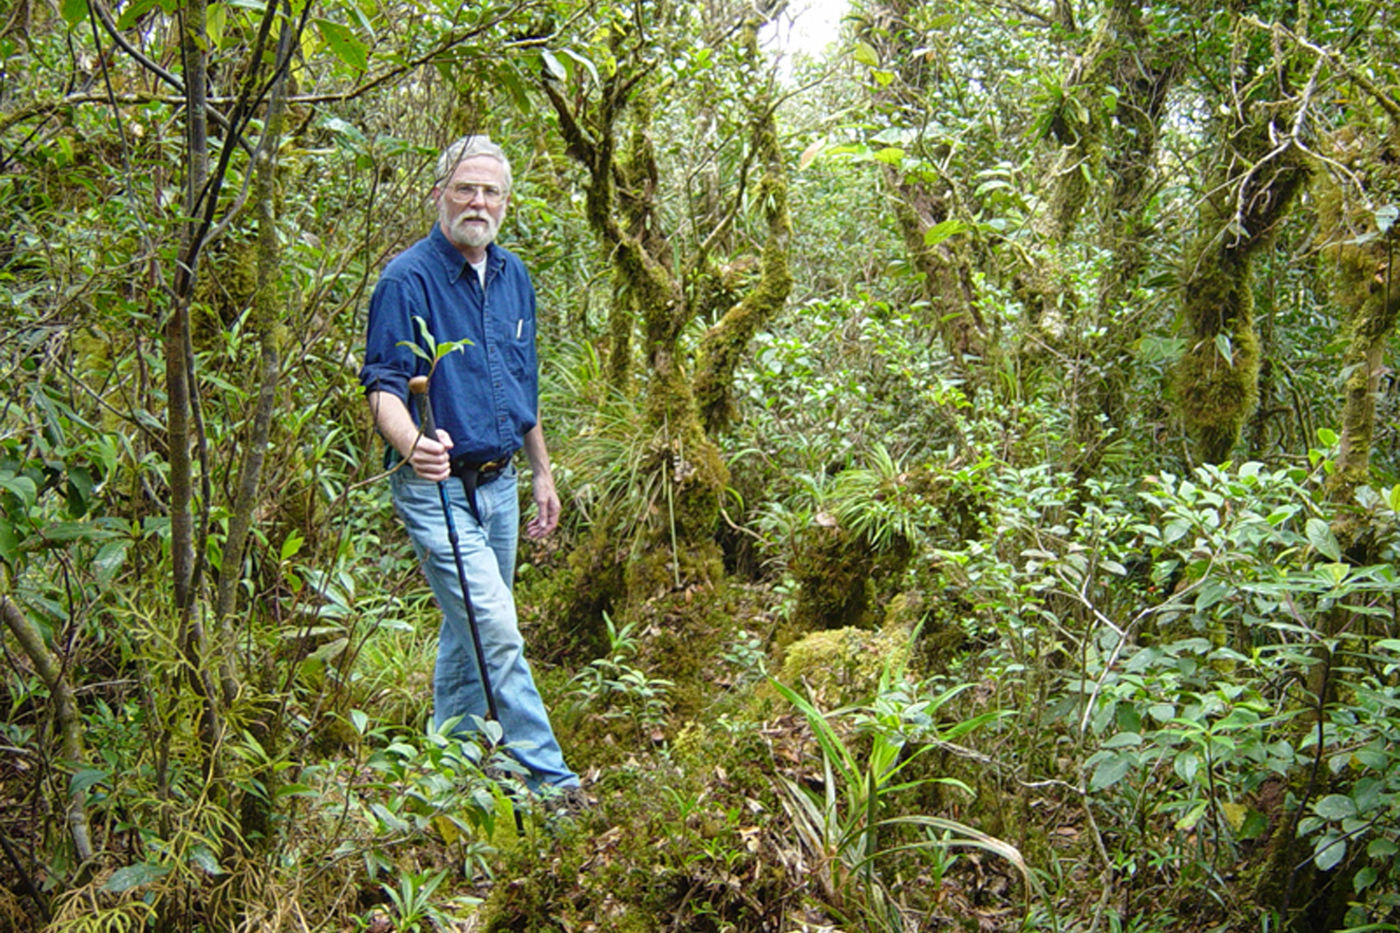 A man stands in the middle of a tropical forest, with bright green plants and mosses surrounding him. He holds a walking stick and poses for the camera.